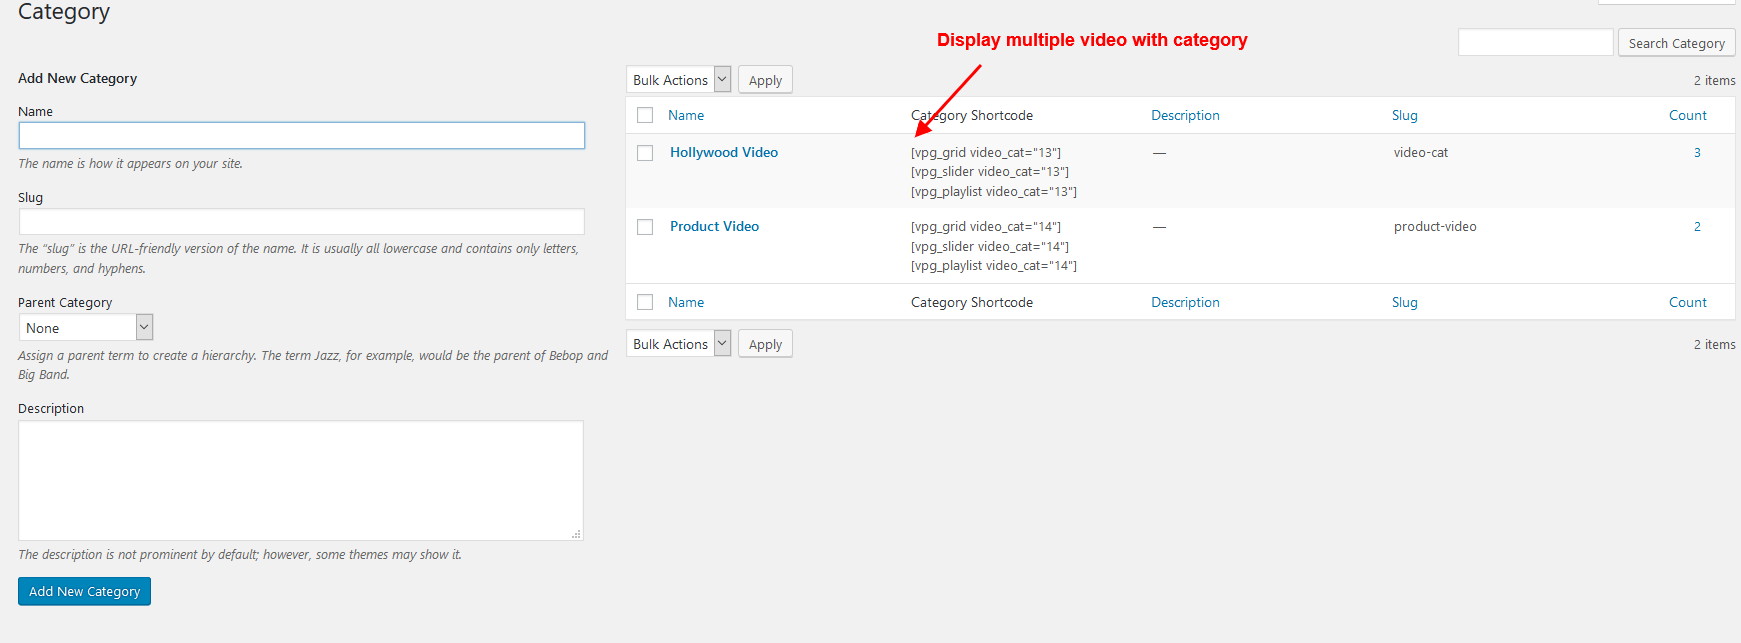 Use multiple video using category.